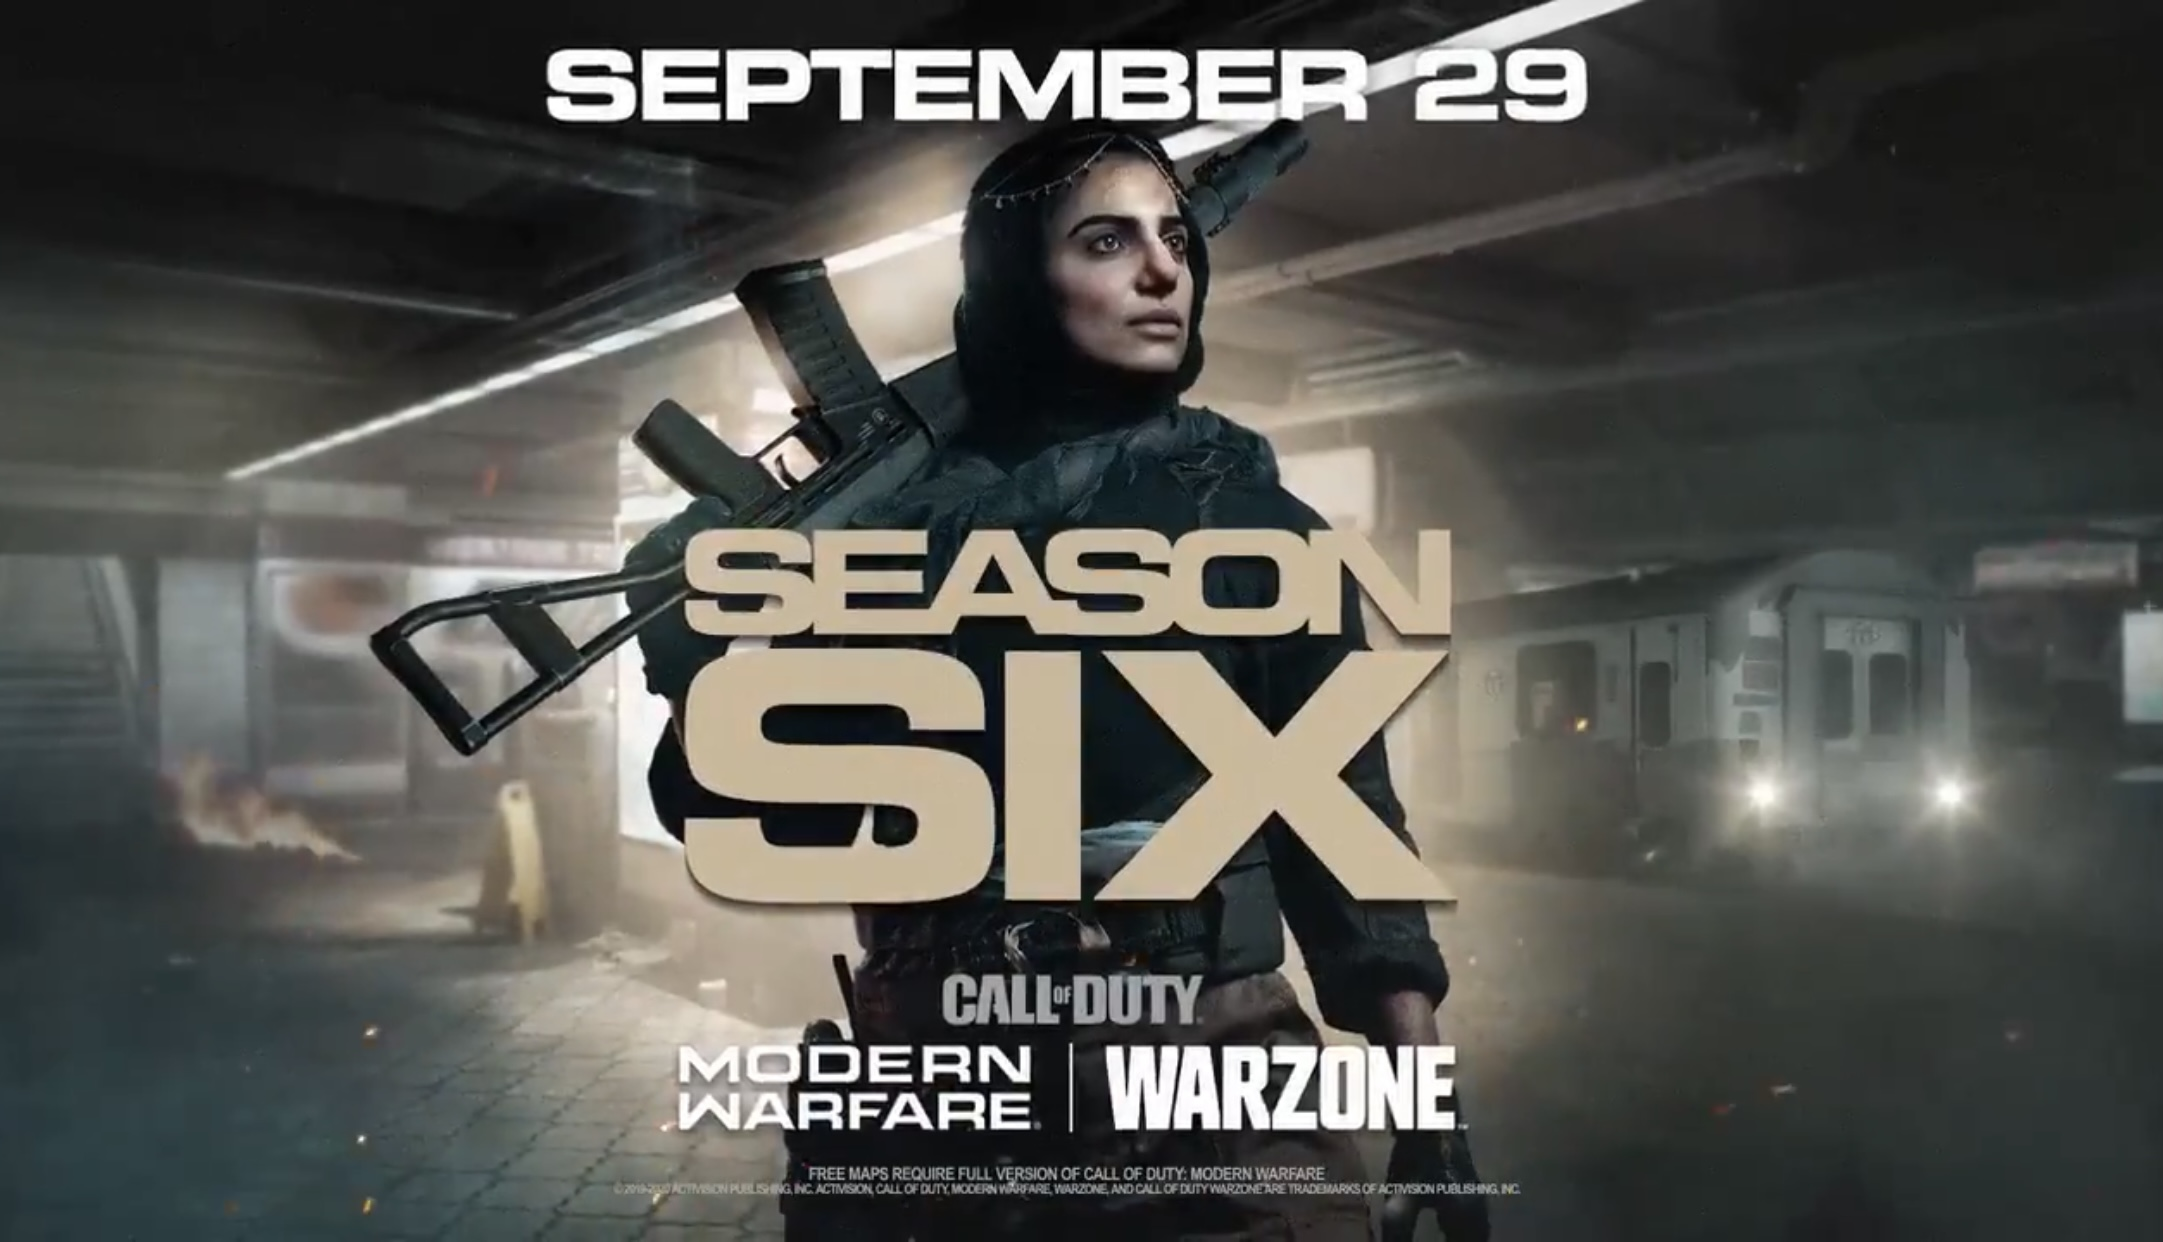 Call Of Duty Modern Warfare season 6 Release Date